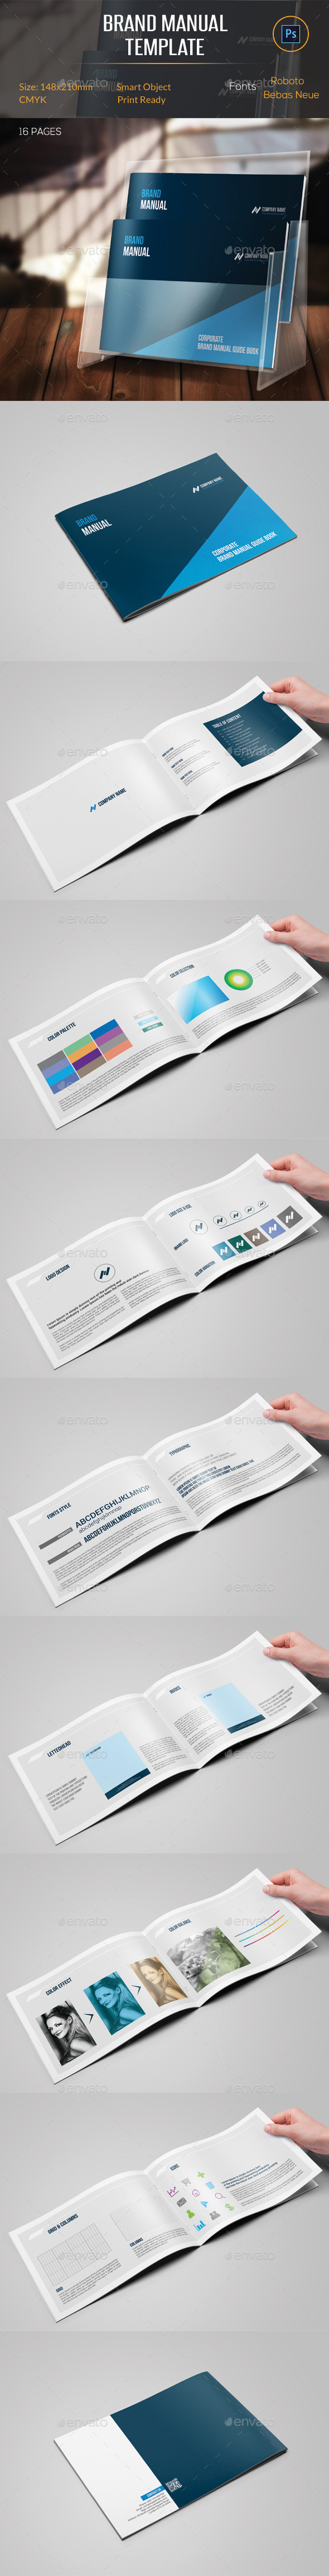 GraphicRiver Brand Manual Template 11287307